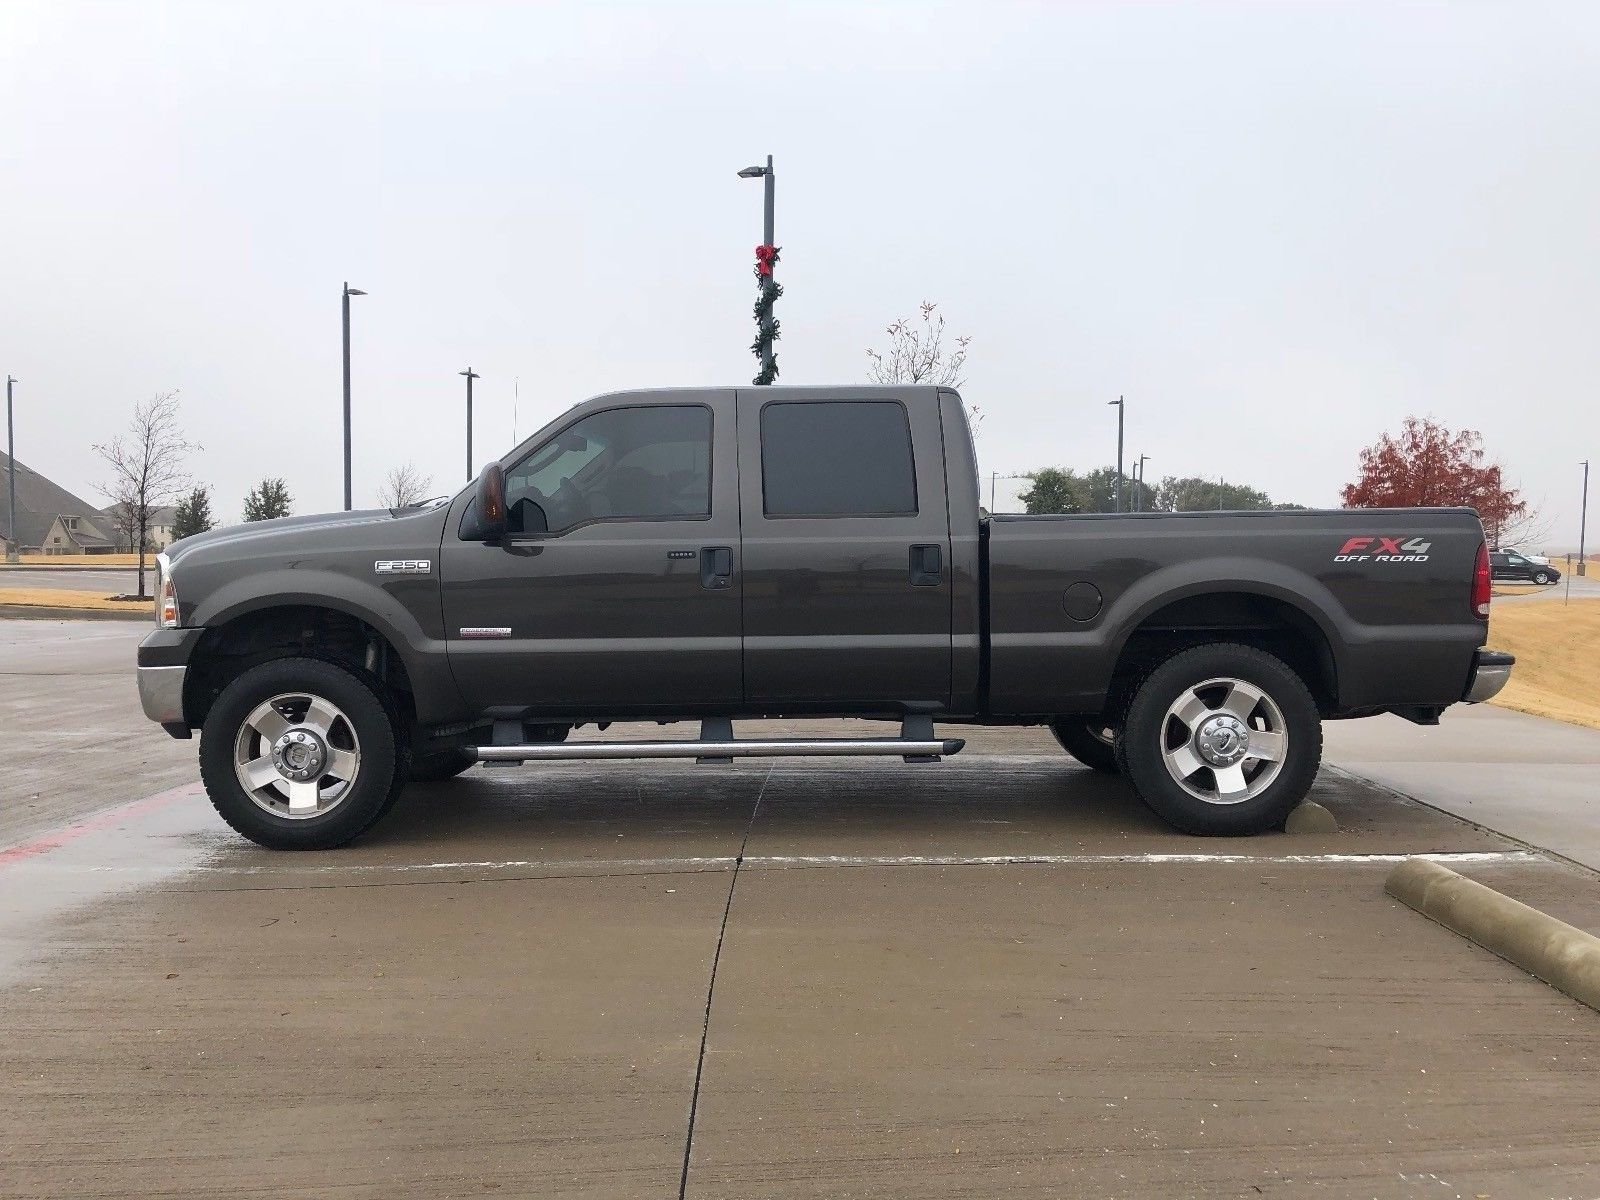 Cool Great 2007 Ford F-250 LARIAT 2007 Ford F250 Lariat 6.0 Powerstroke 2017 2018 Check more at http://24auto.cf/2017/great-2007-ford-f-250-lariat-2007-ford-f250-lariat-6-0-powerstroke-2017-2018/